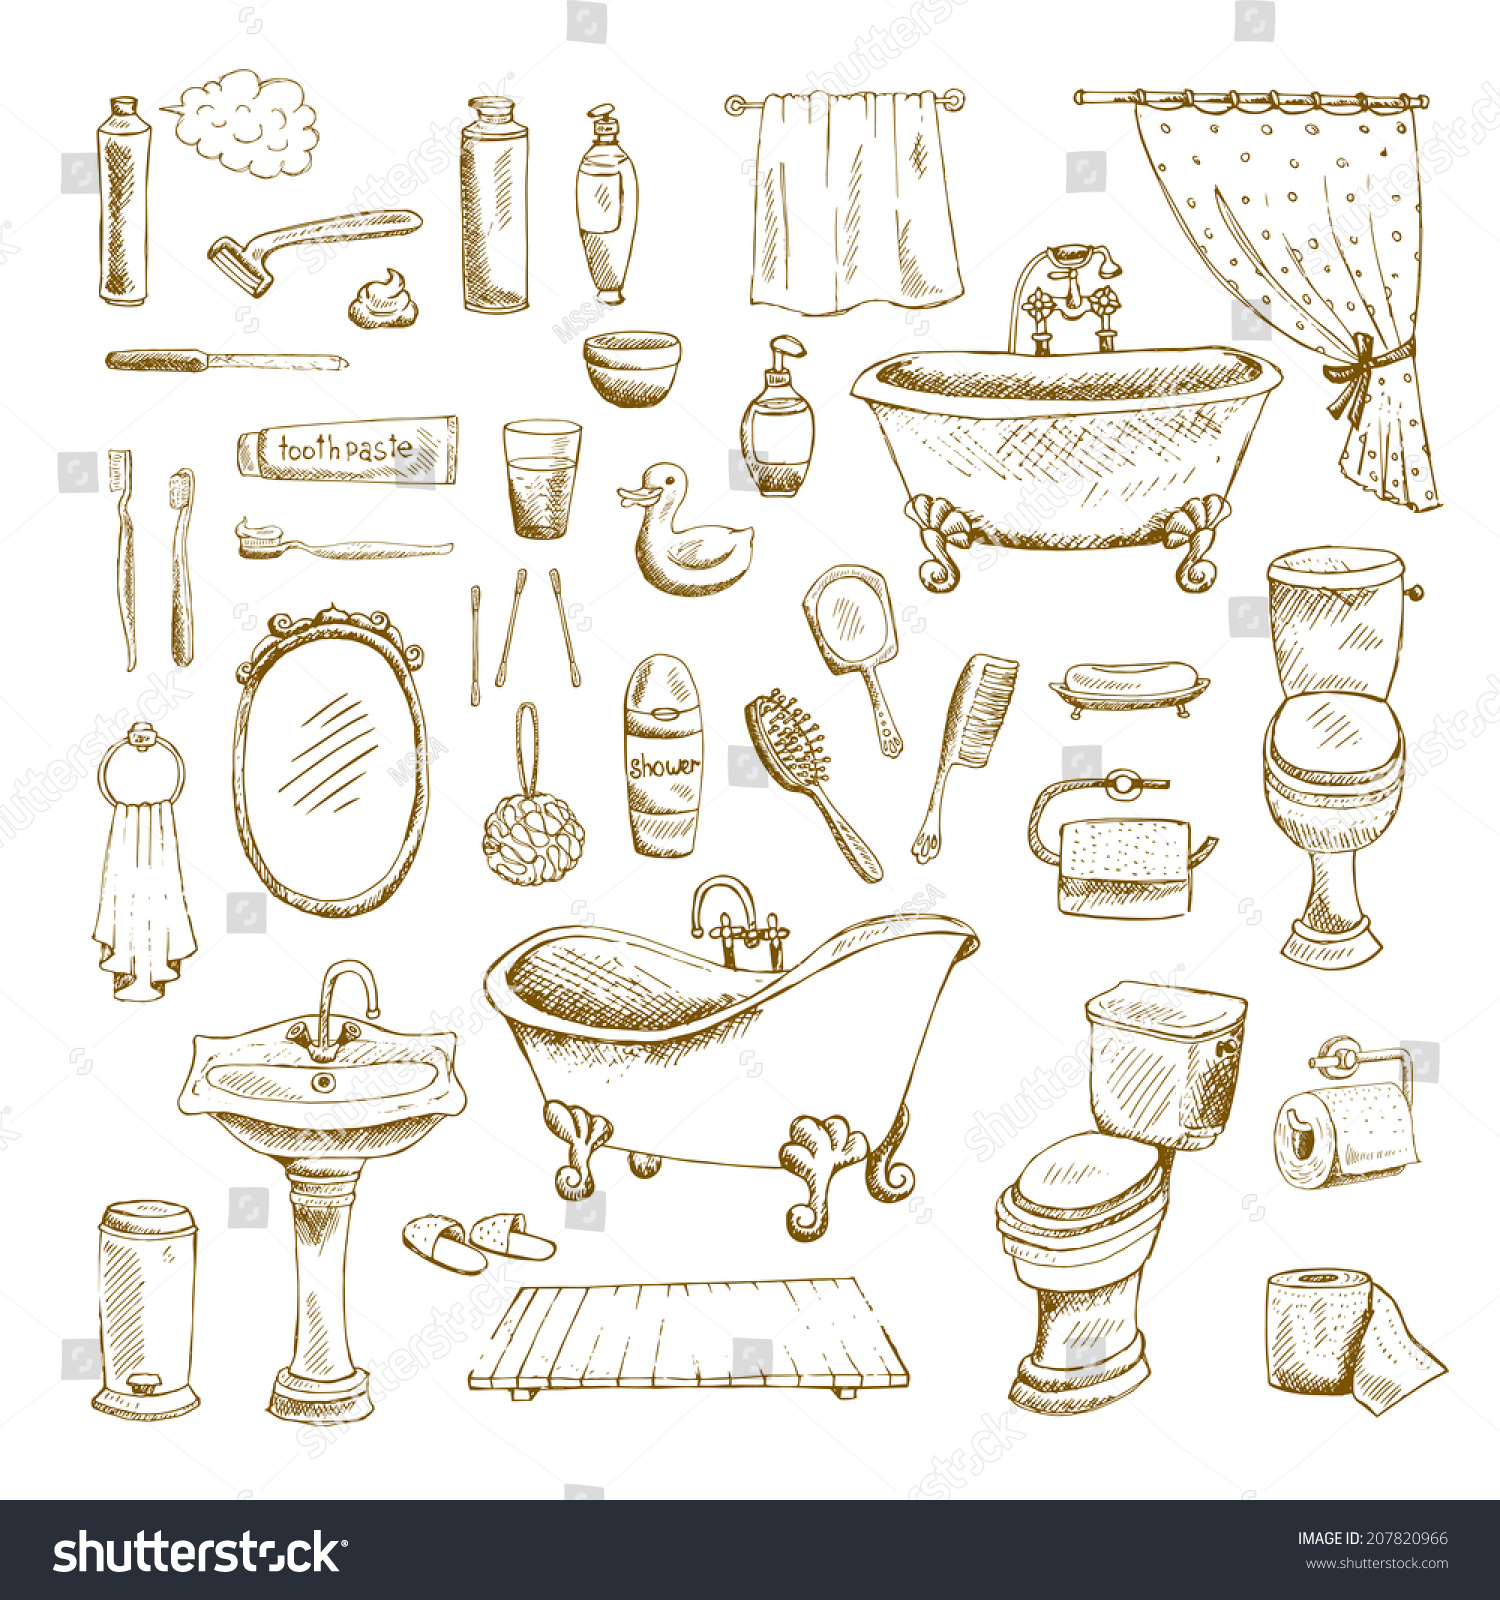 Hand Drawn Bathroom Interior Elements Toilet Stock Vector